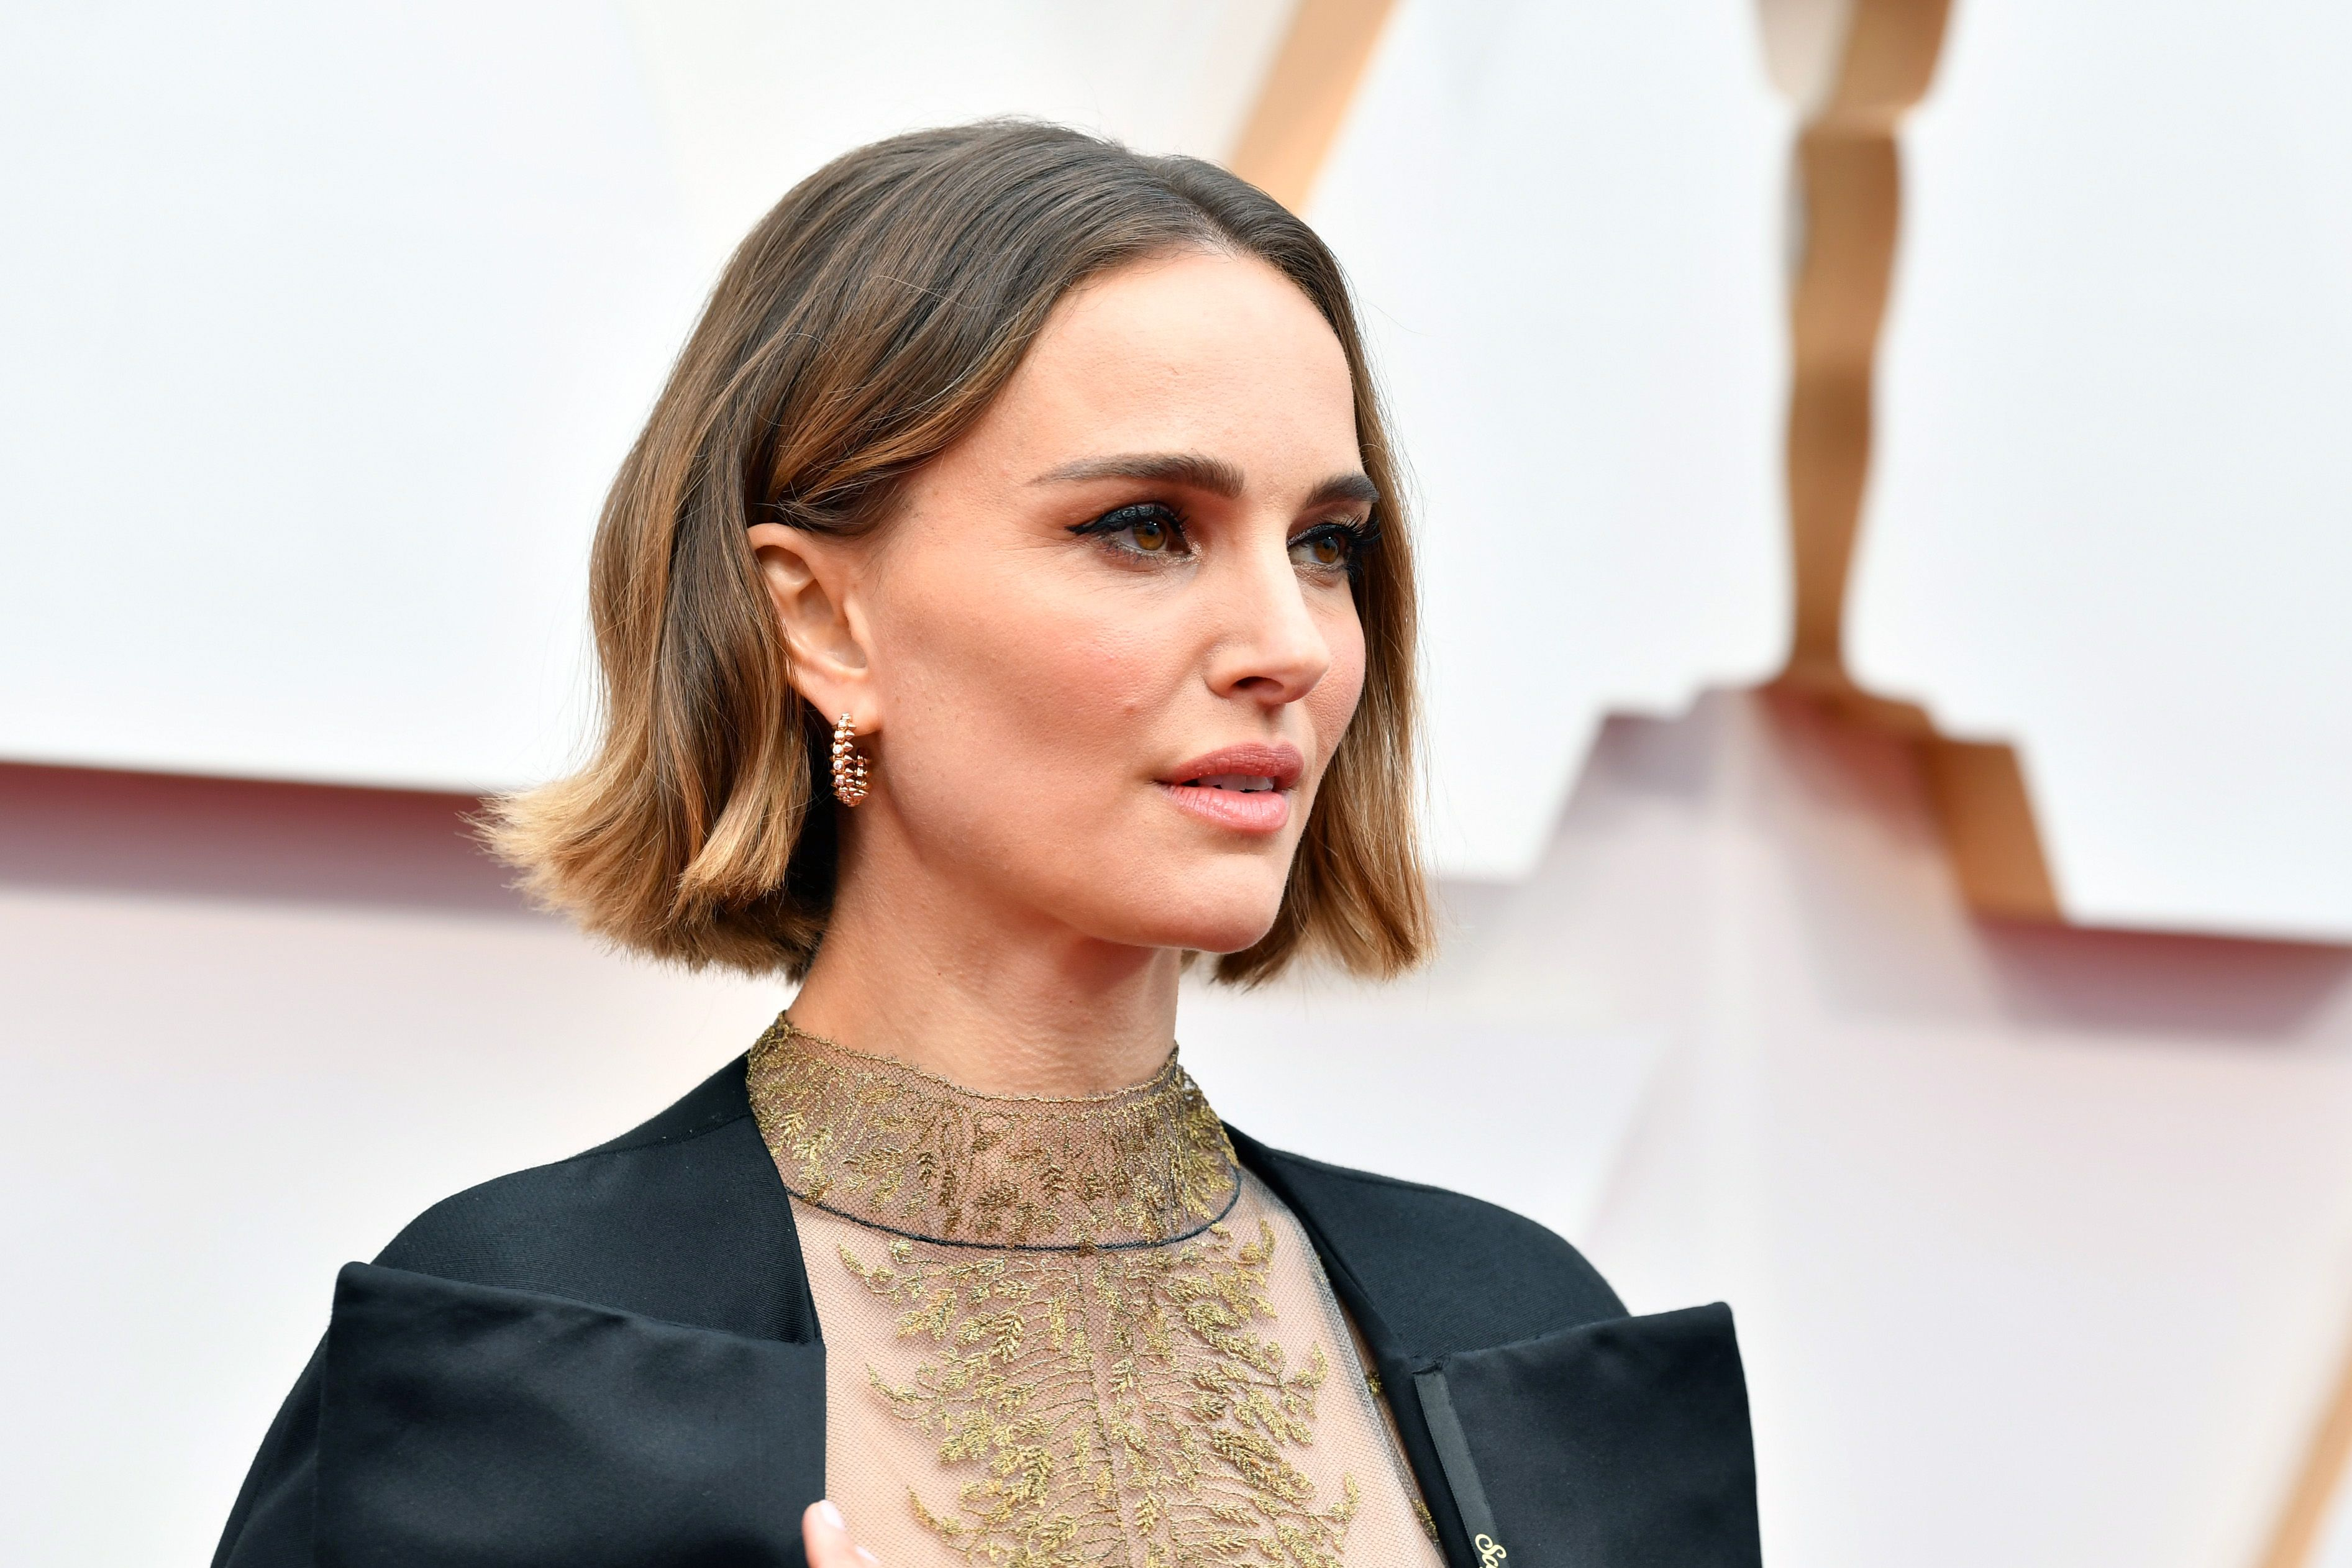 Natalie Portman at the Oscars 2020 – Red Carpet